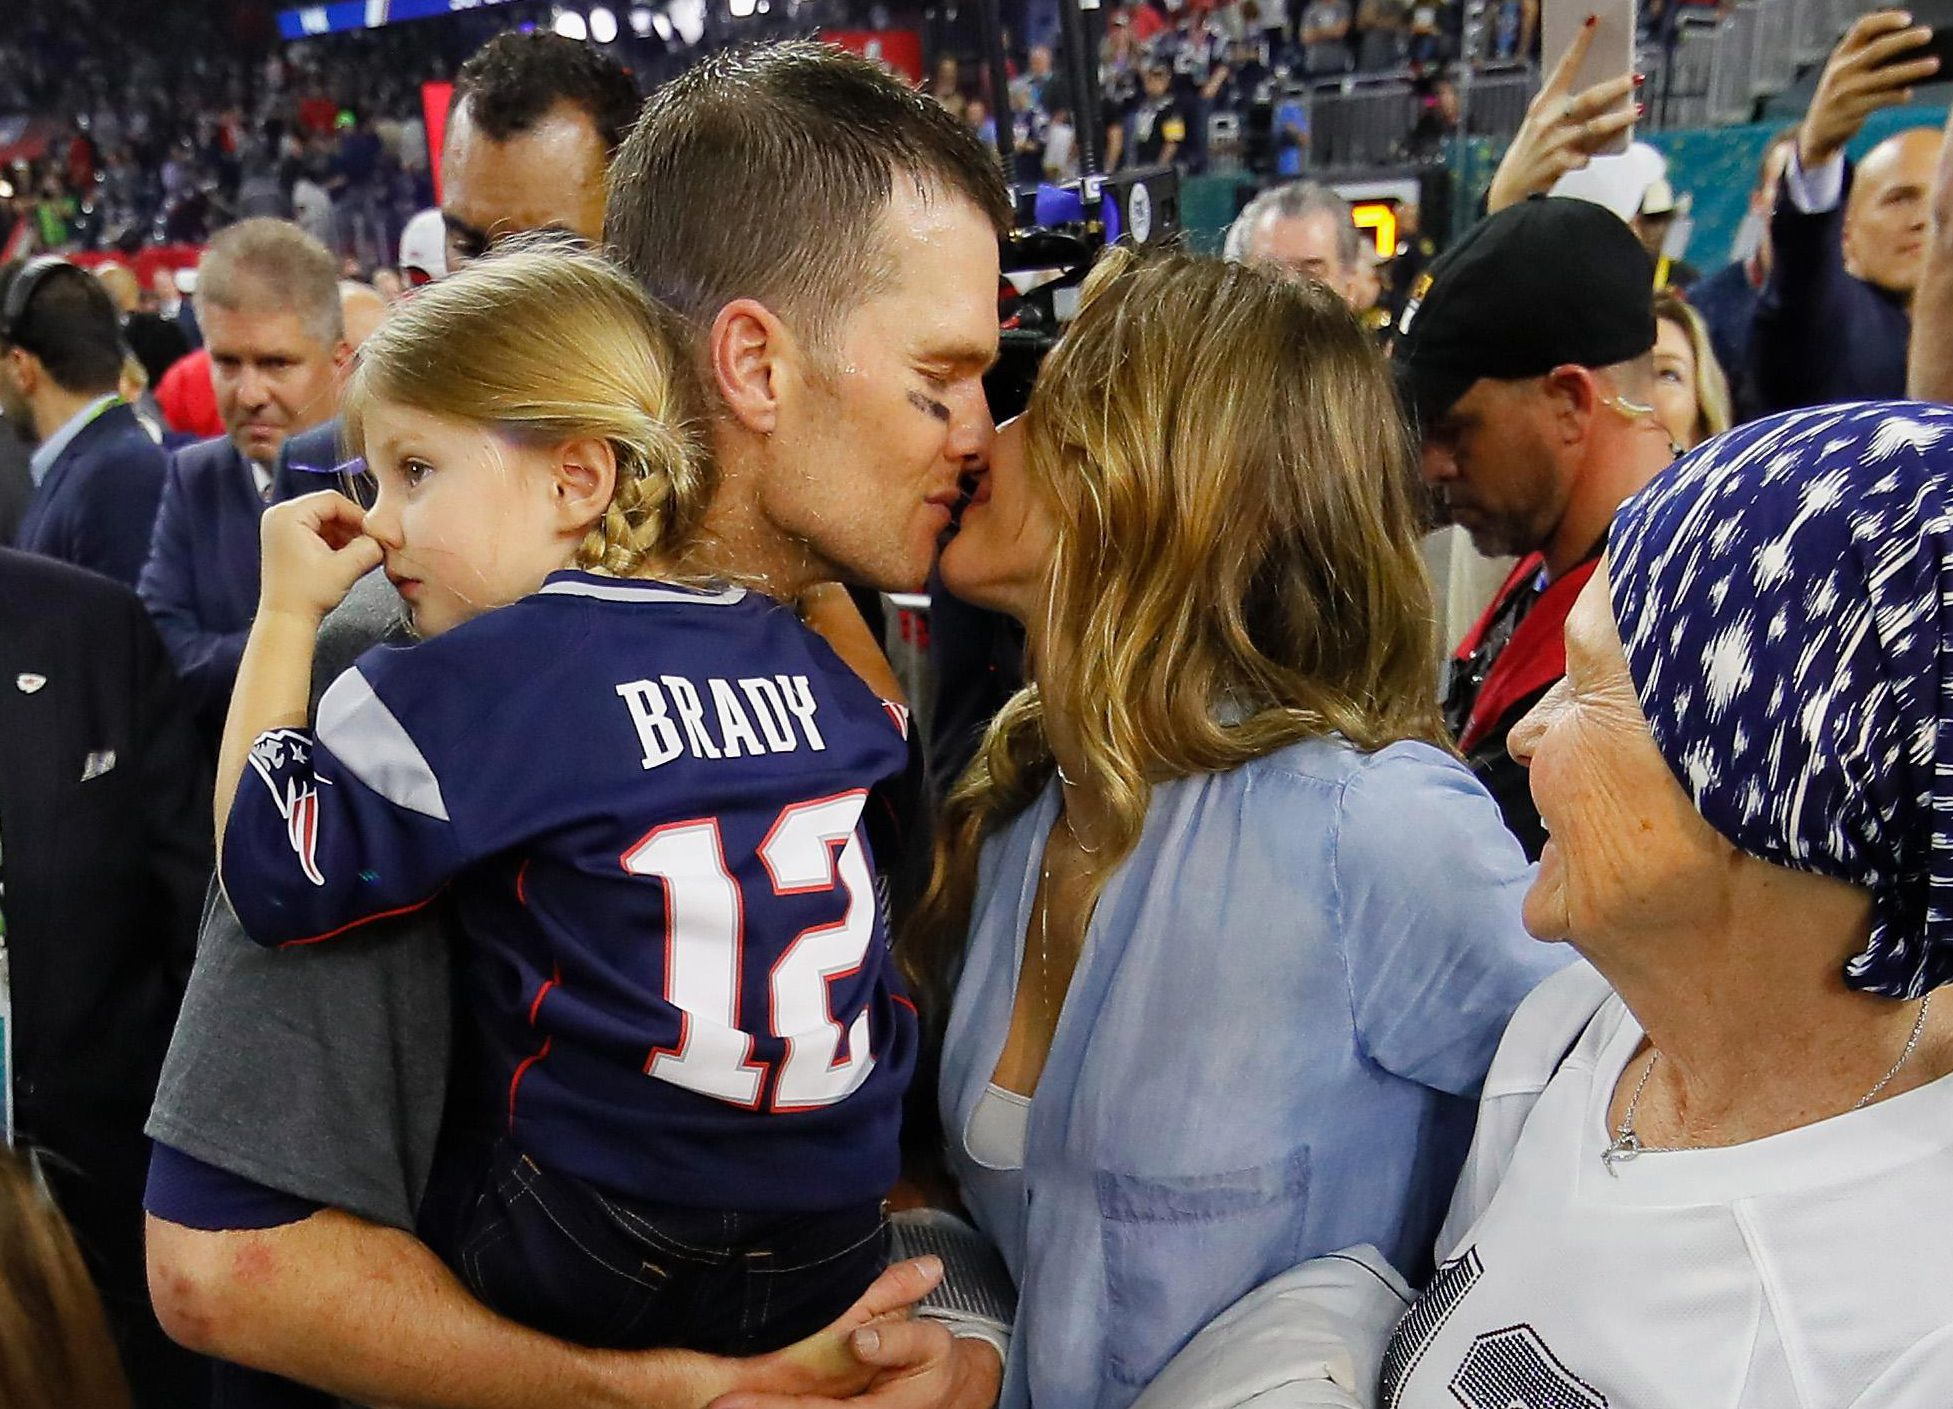 Tom Brady celebrates with wife Gisele Bundchen and daughter Vivian Brady after New England Patriots beat Atlanta Falcons in the 2017 Super Bowl